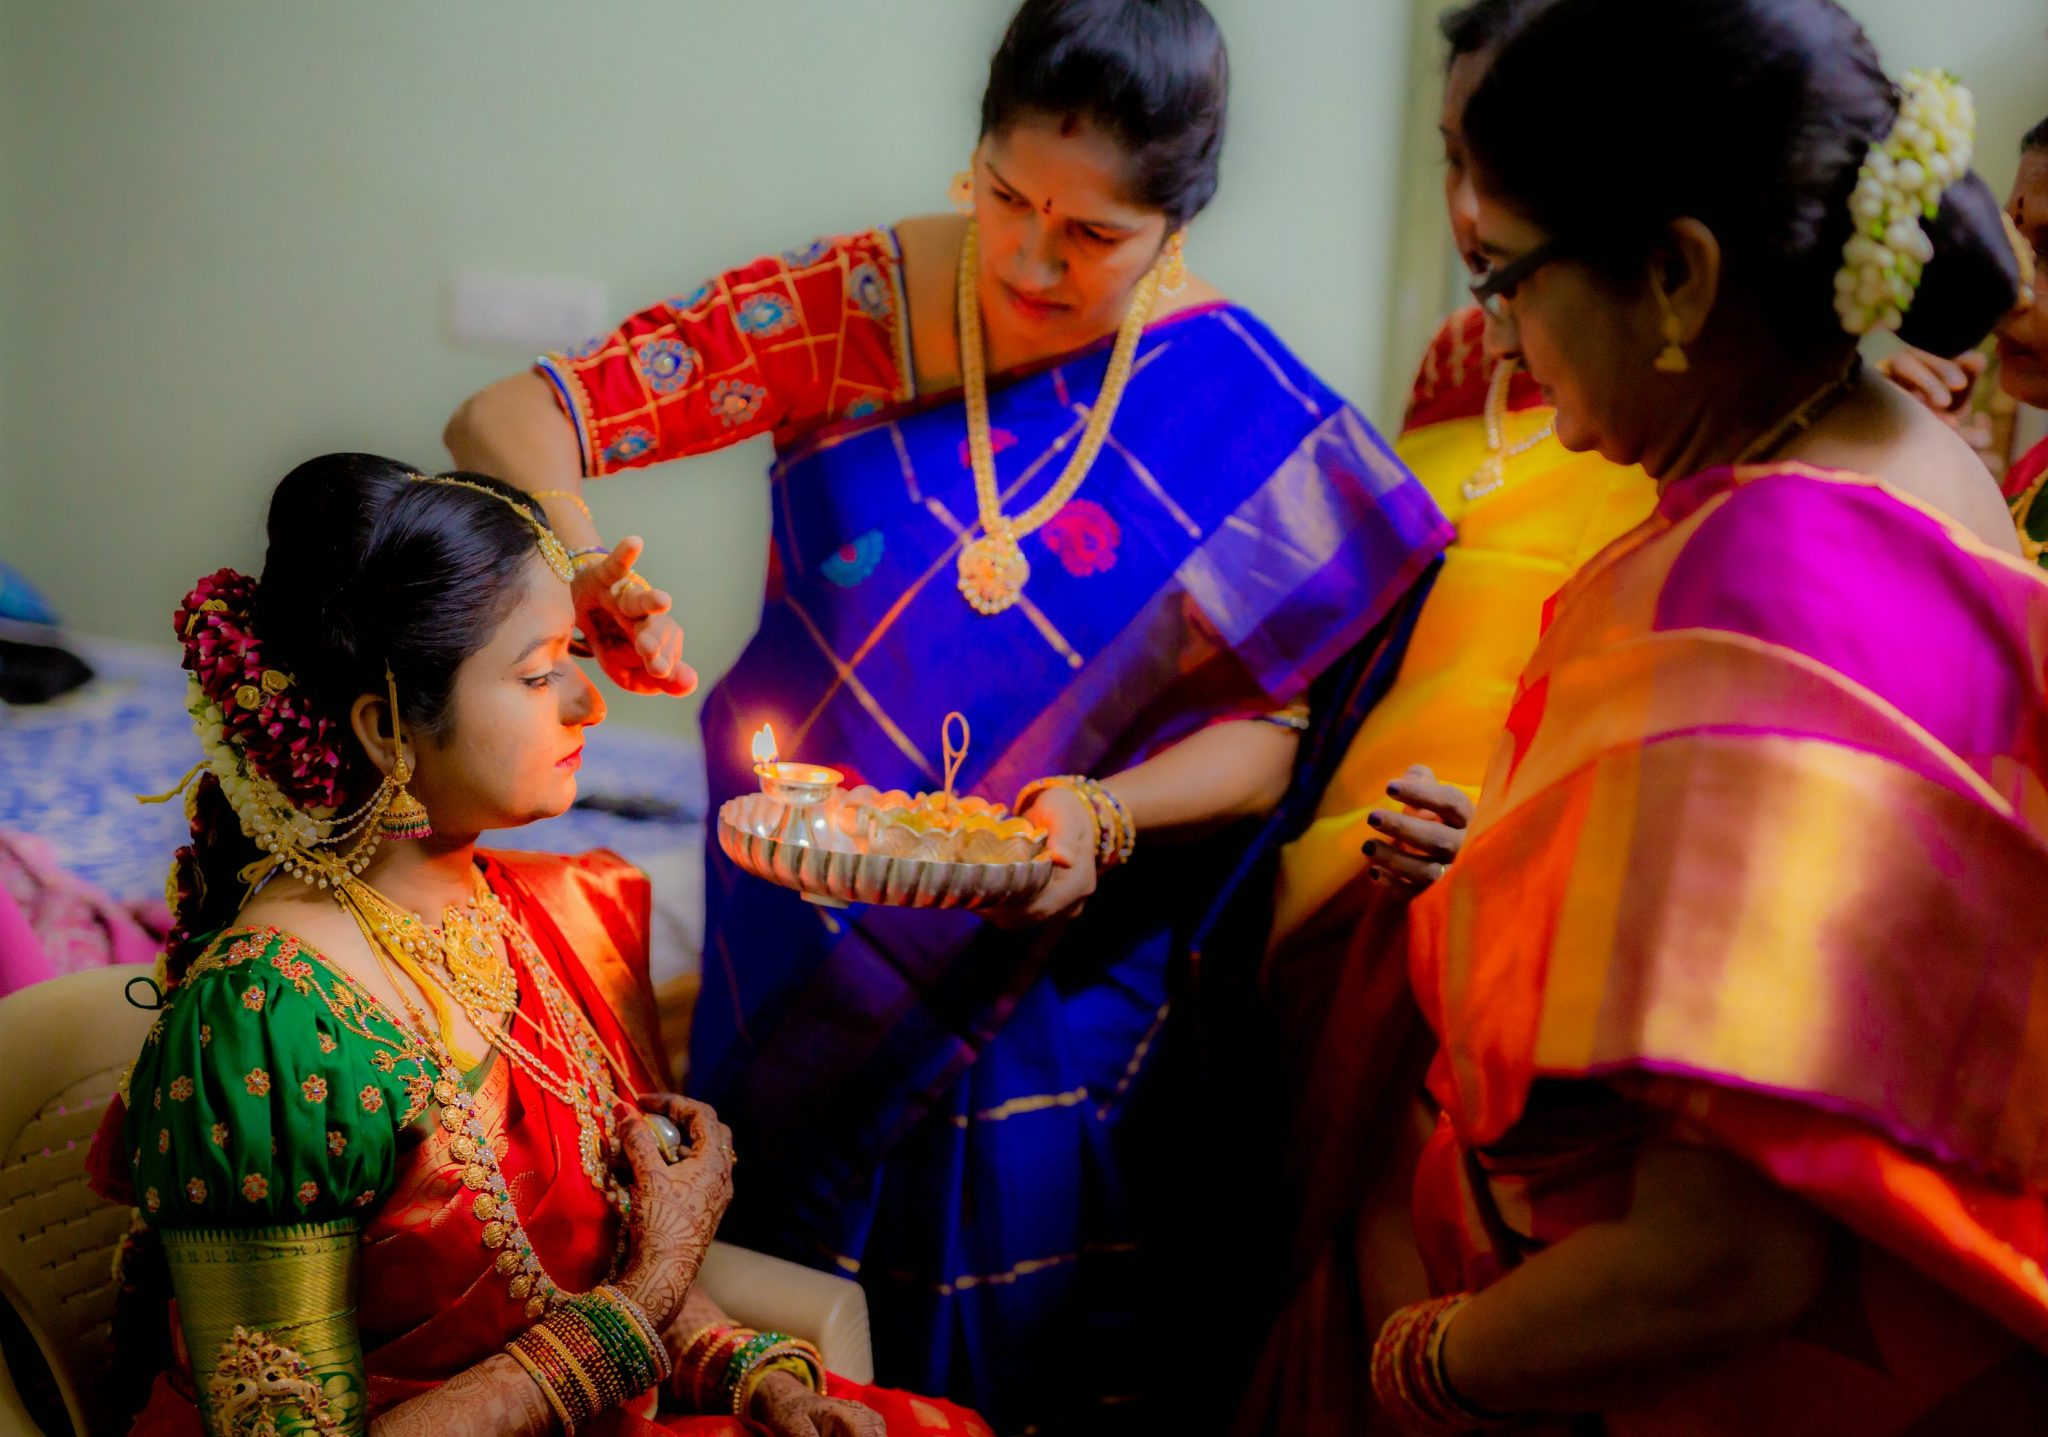 15 Hindu Telugu Rituals for your Traditional Indian Wedding Day featured by top US life and style blog, Dreaming Loud: Mangala Snanam